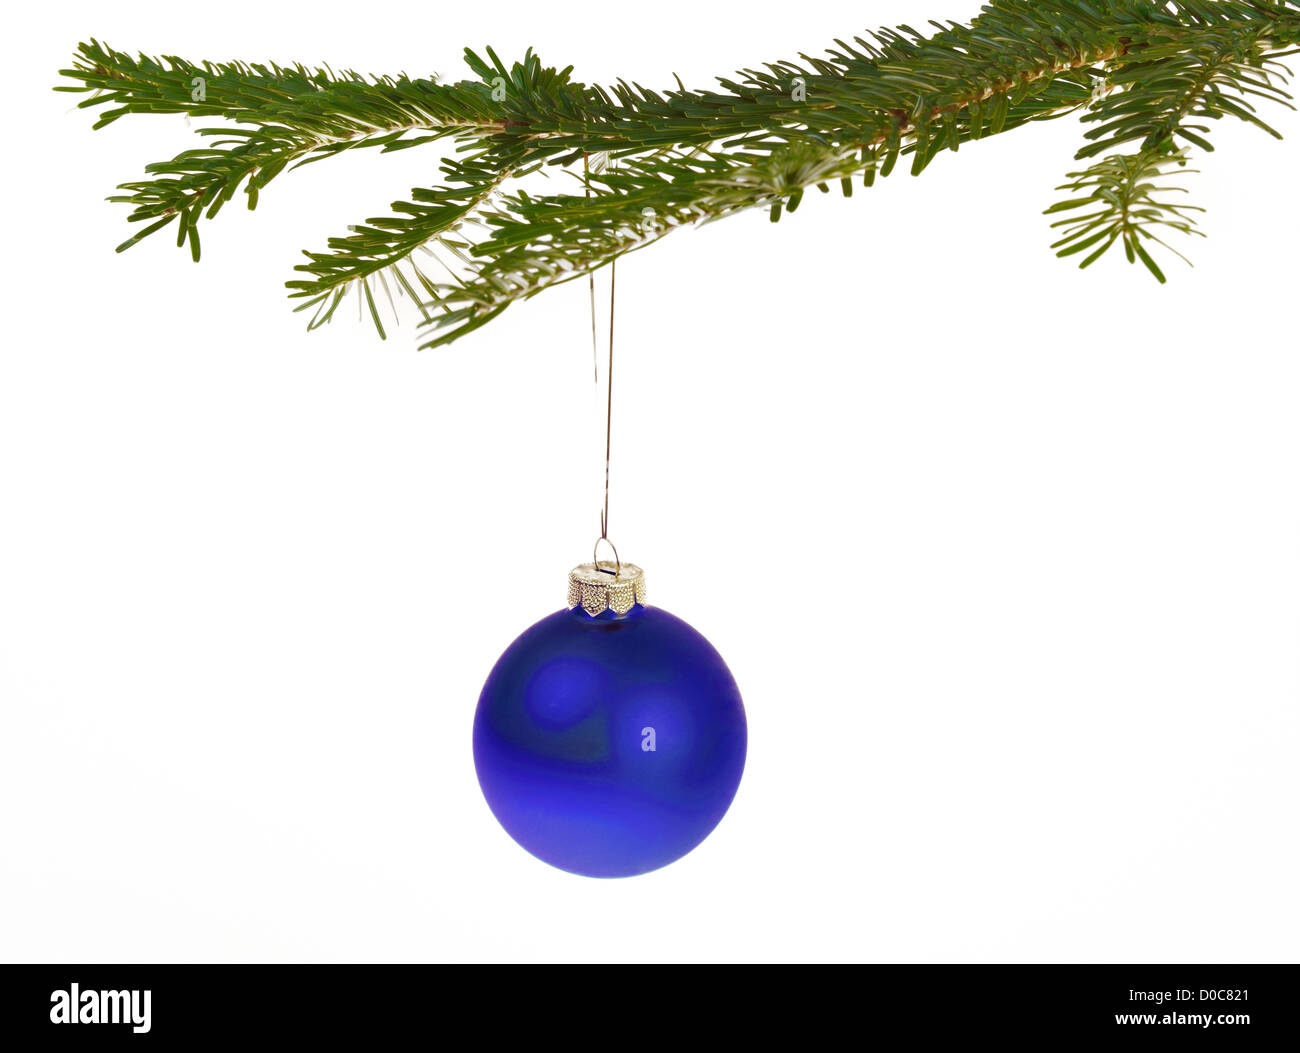 Blue Christmas decorations hanging from a pine branch - isolated on white background - Stock Image